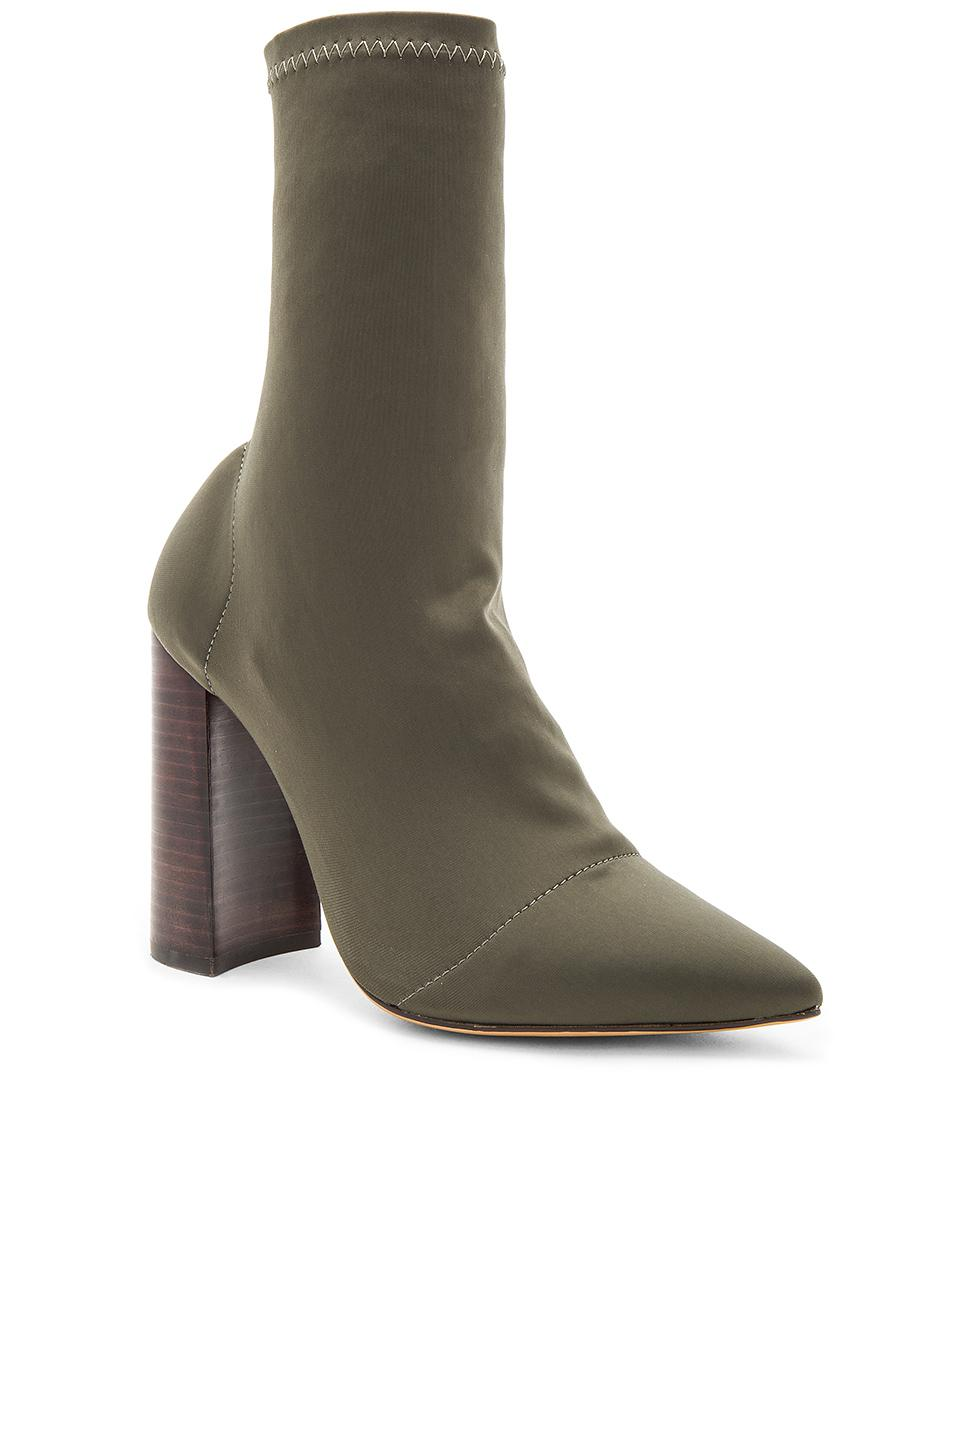 Tony Bianco Diddy Heel In Natural Lyst